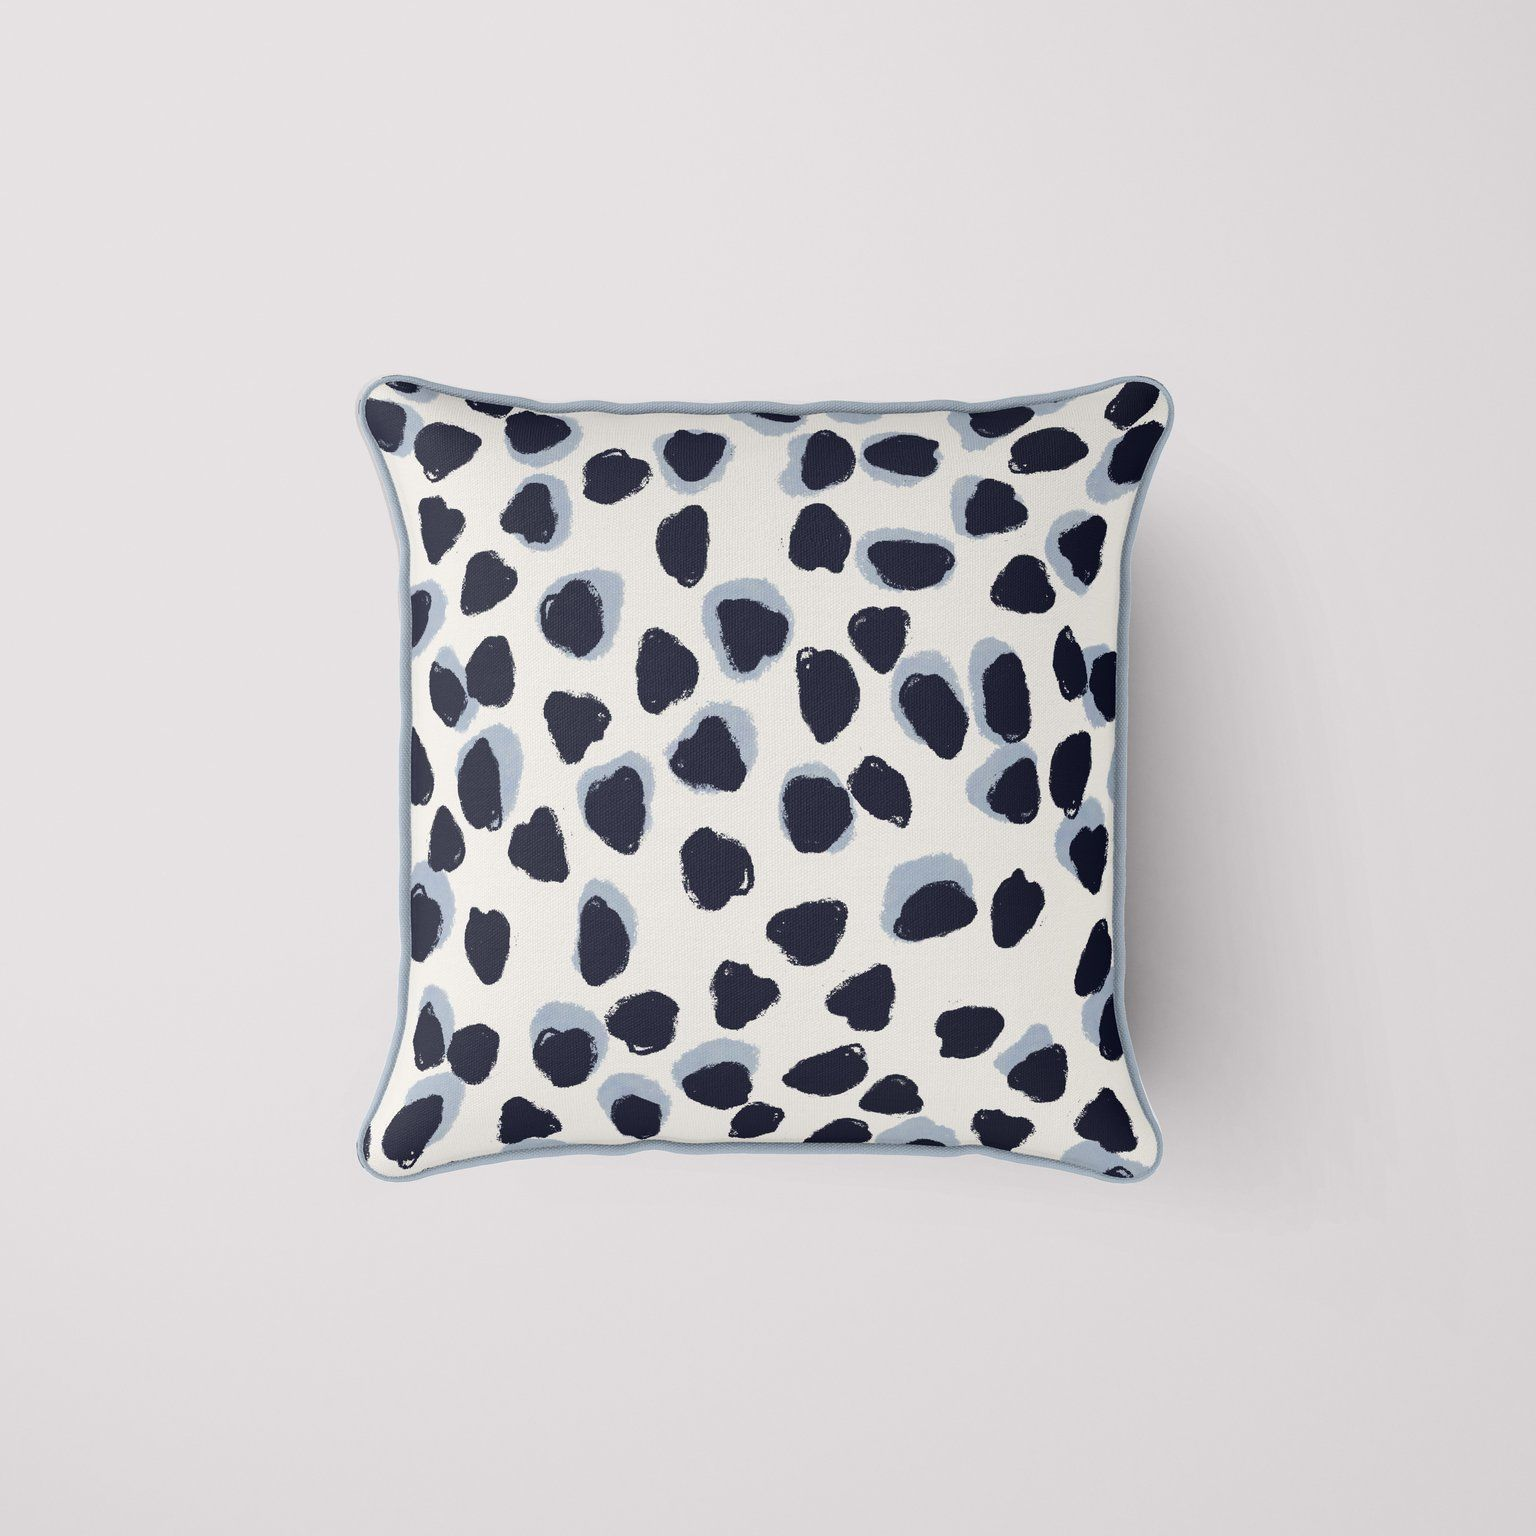 1 Sewing Down South Craig Conover Of Southern Charm Sewing Southern Sewing Down South Polka Dot Pillow Dot Pillow Pillows